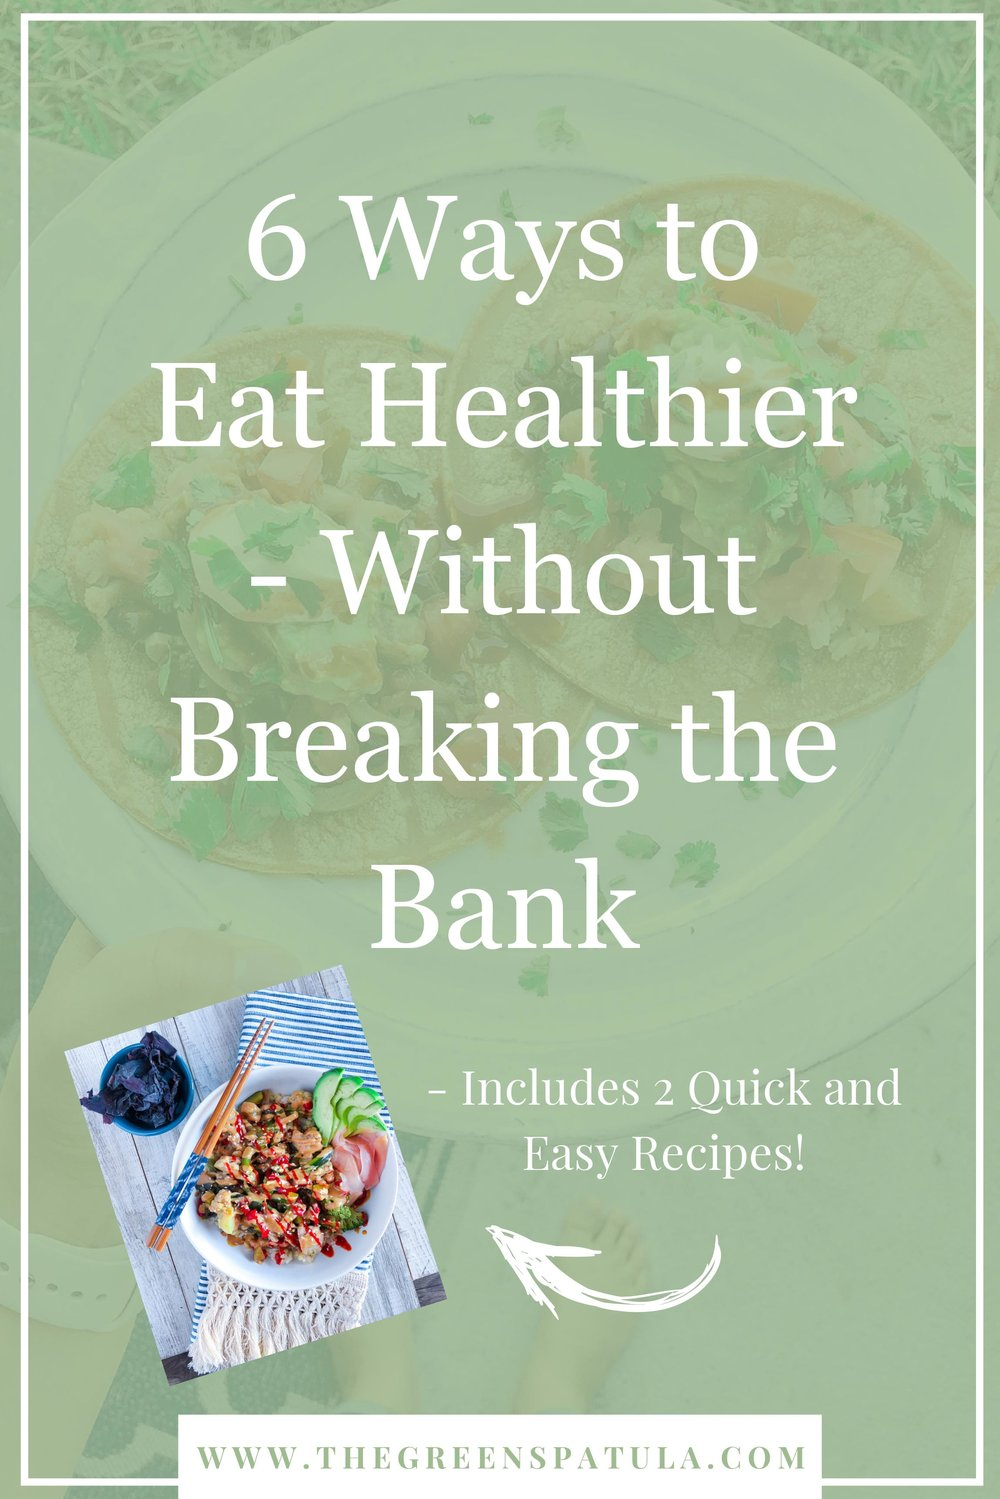 Eat healthier while staying on a budget! 6 tips to eat cleaner and greener without breaking the bank. Understand when to buy organic, what to buy at the grocery store, and what meals to cook to stretch your dollars. Includes 2 quick and easy vegan recipes! #healthyeating #realfood#budgeting #veganonabudget #mealprep #vegan #plantbased